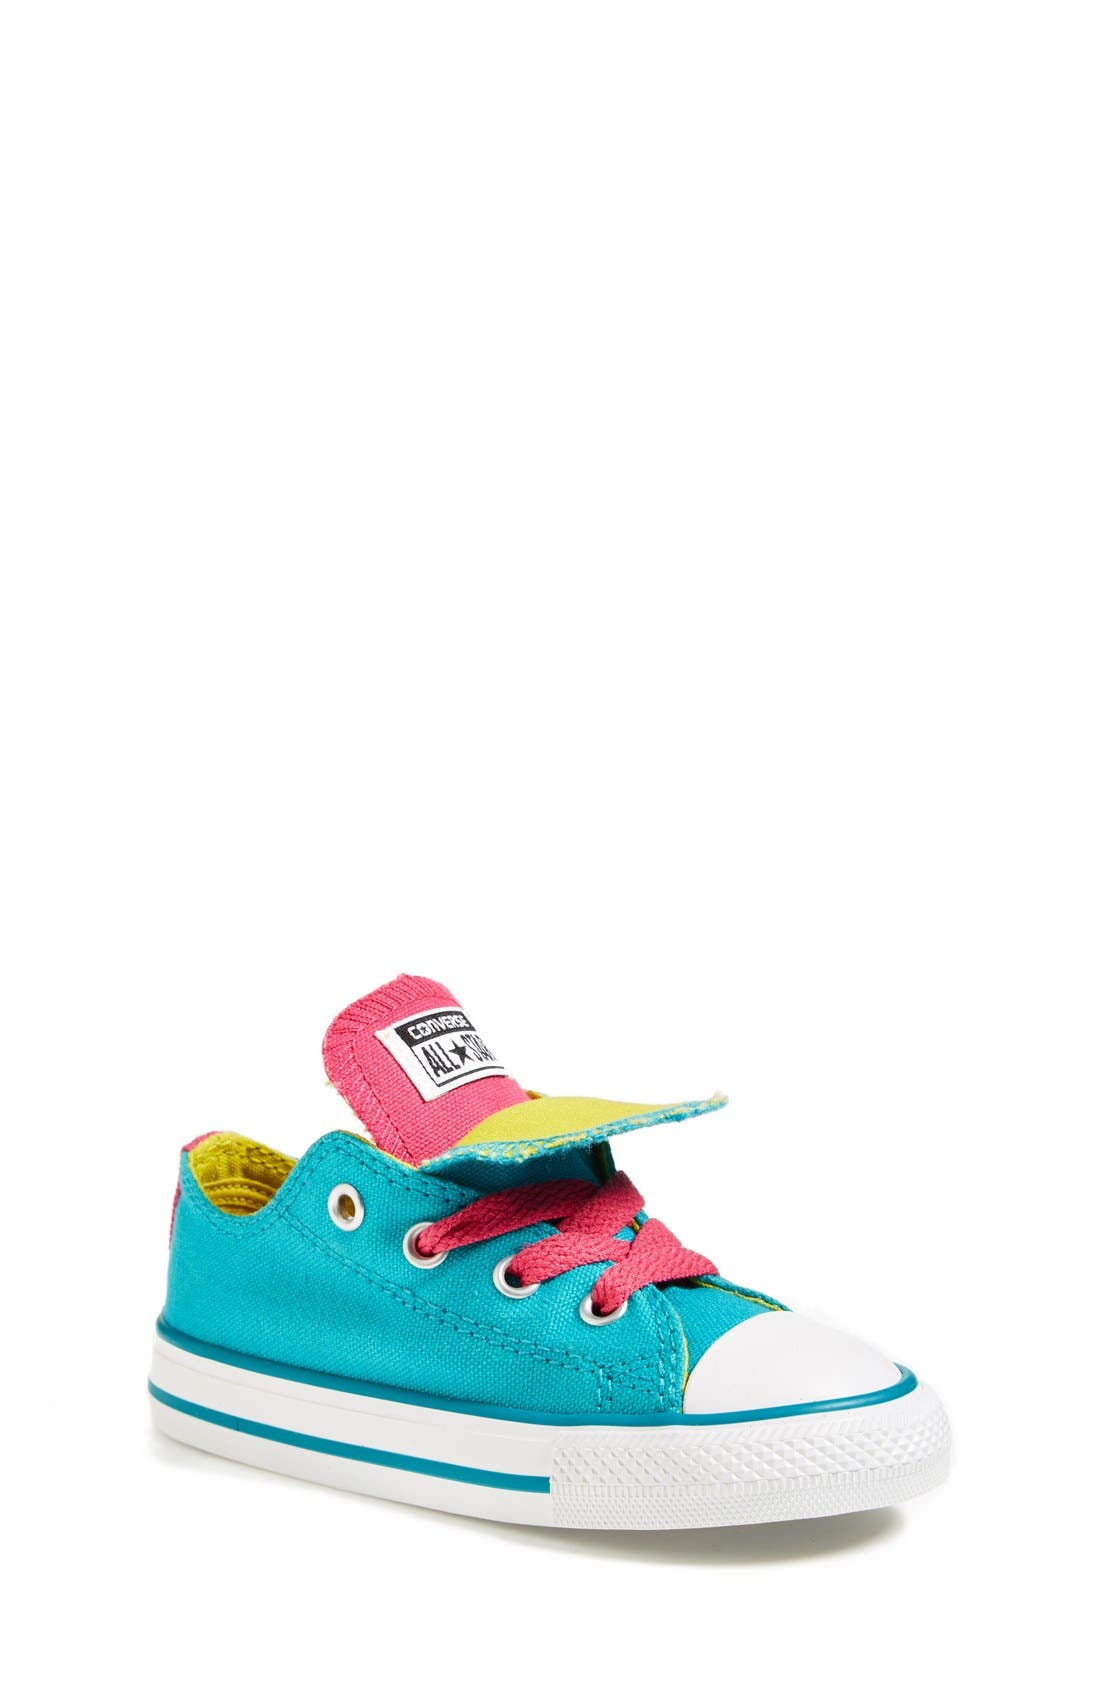 Main Image - Converse Chuck Taylor® All Star® 'Double Tongue' Sneaker (Baby, Walker, Toddler, Little Kid & Big Kid)